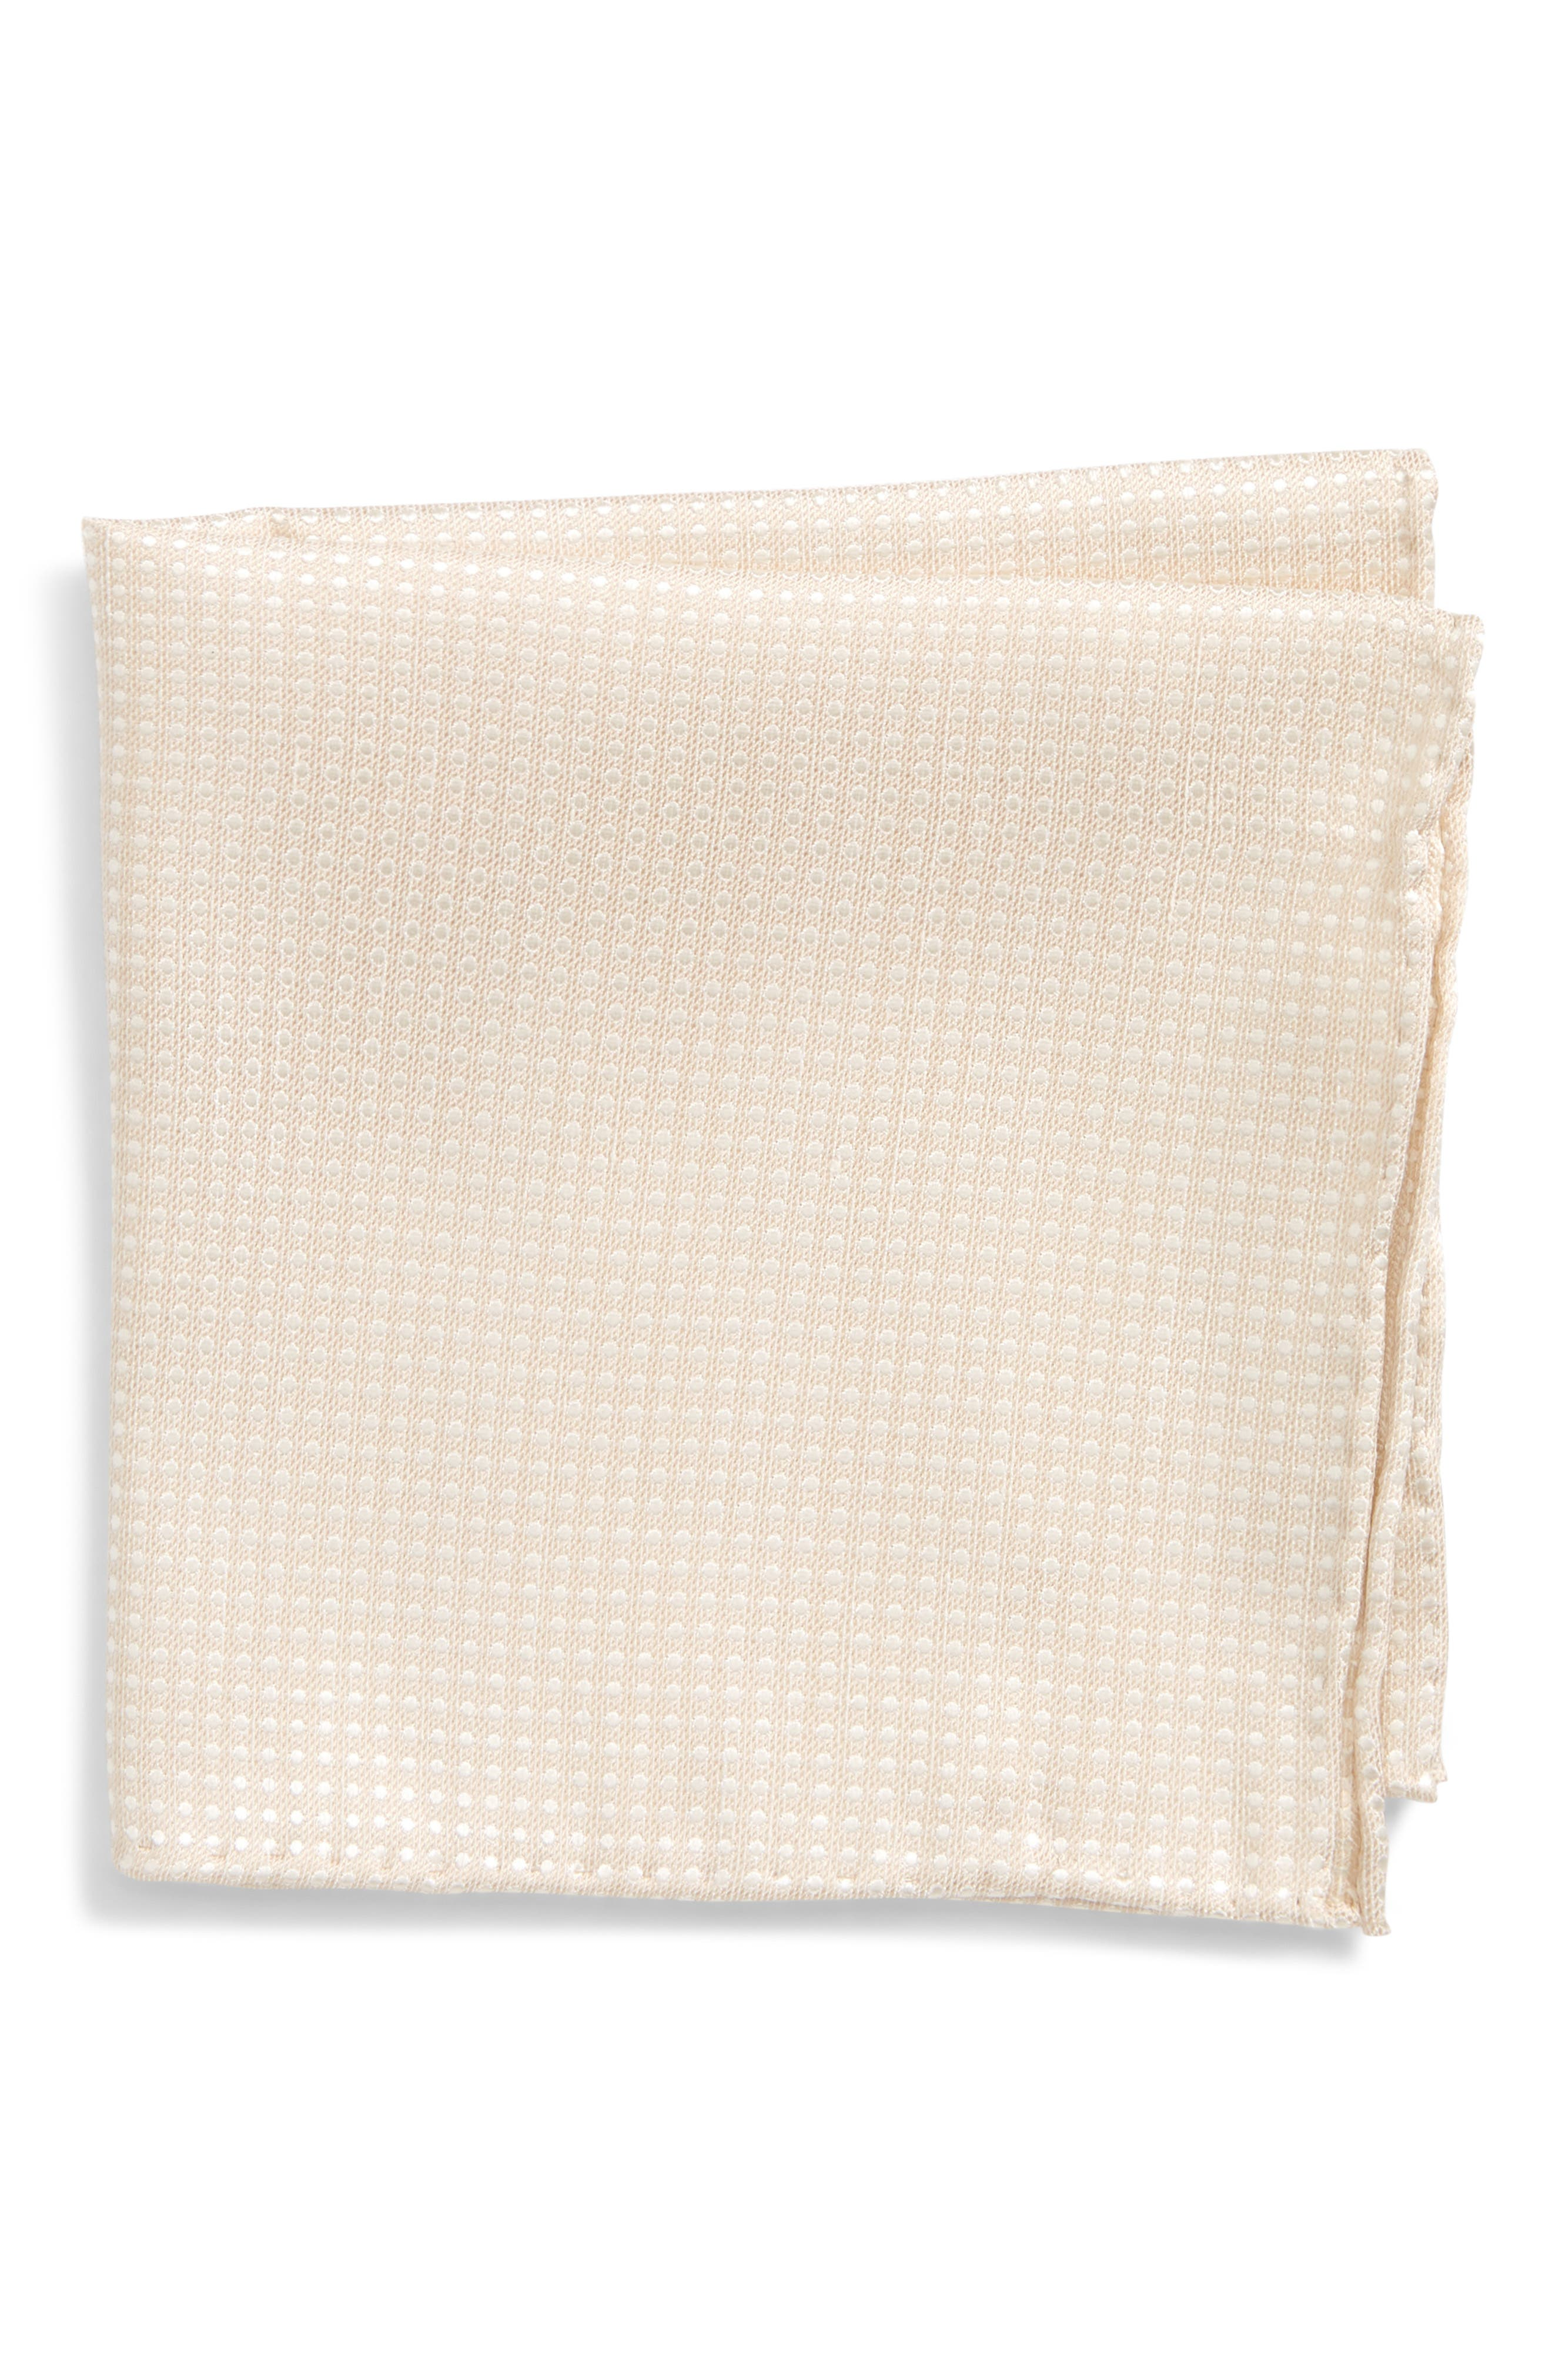 Dotten Spin Silk & Linen Pocket Square,                             Main thumbnail 1, color,                             Light Champagne